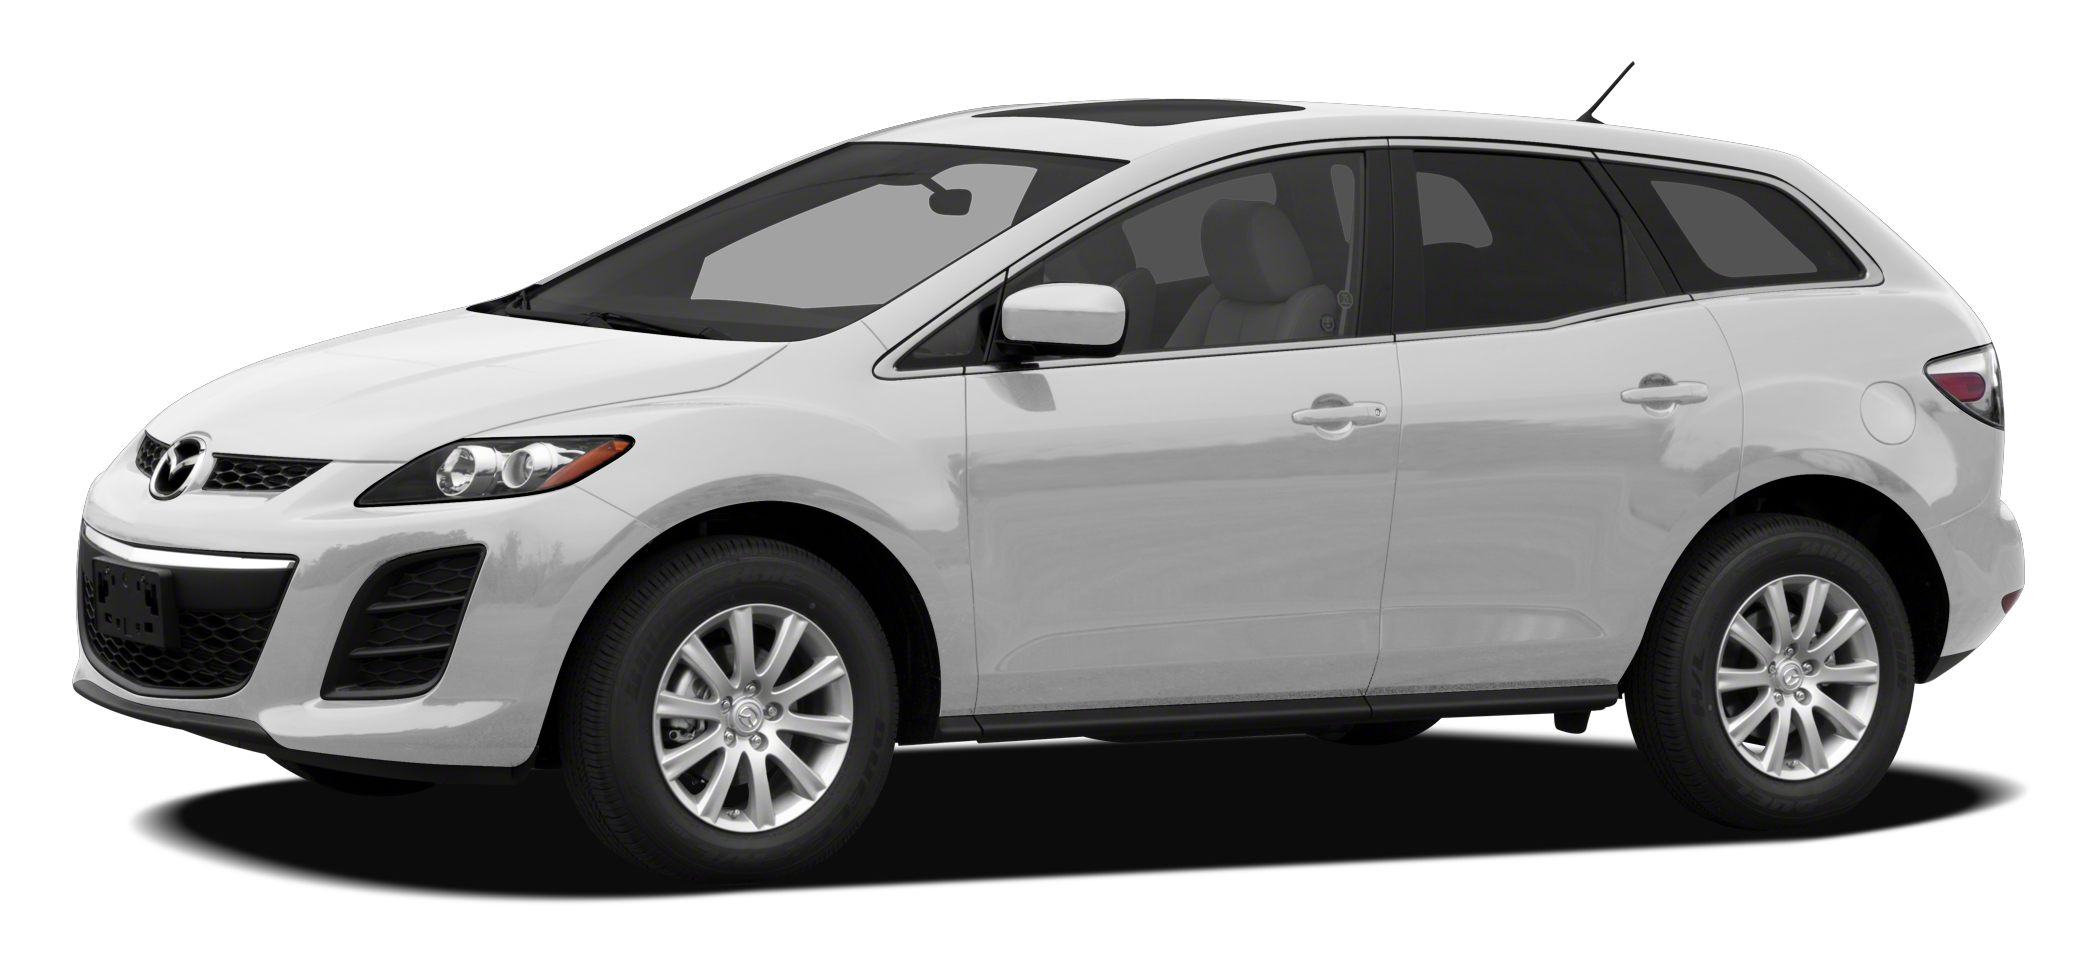 2012 Mazda CX-7 i Sport This is the vehicle for you if youre looking to get great gas mileage on